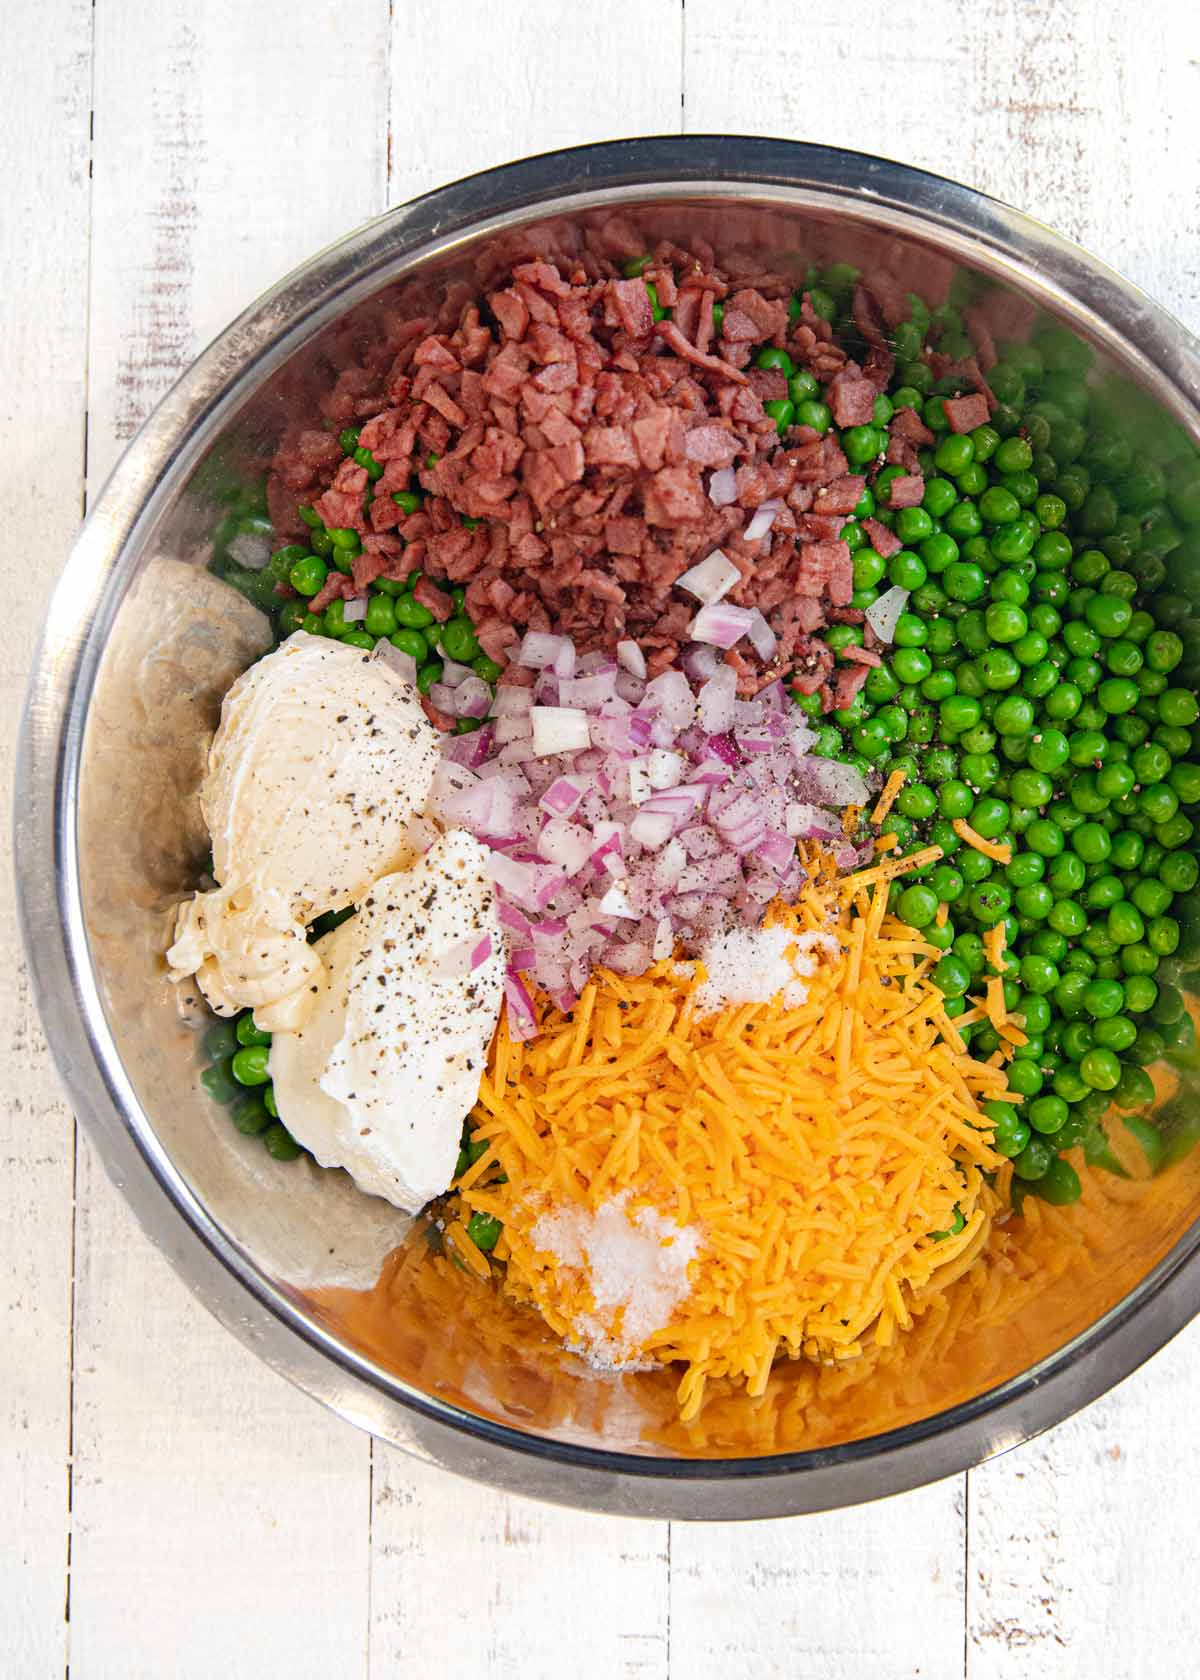 Healthy Pea and Bacon Salad ingredients in bowl